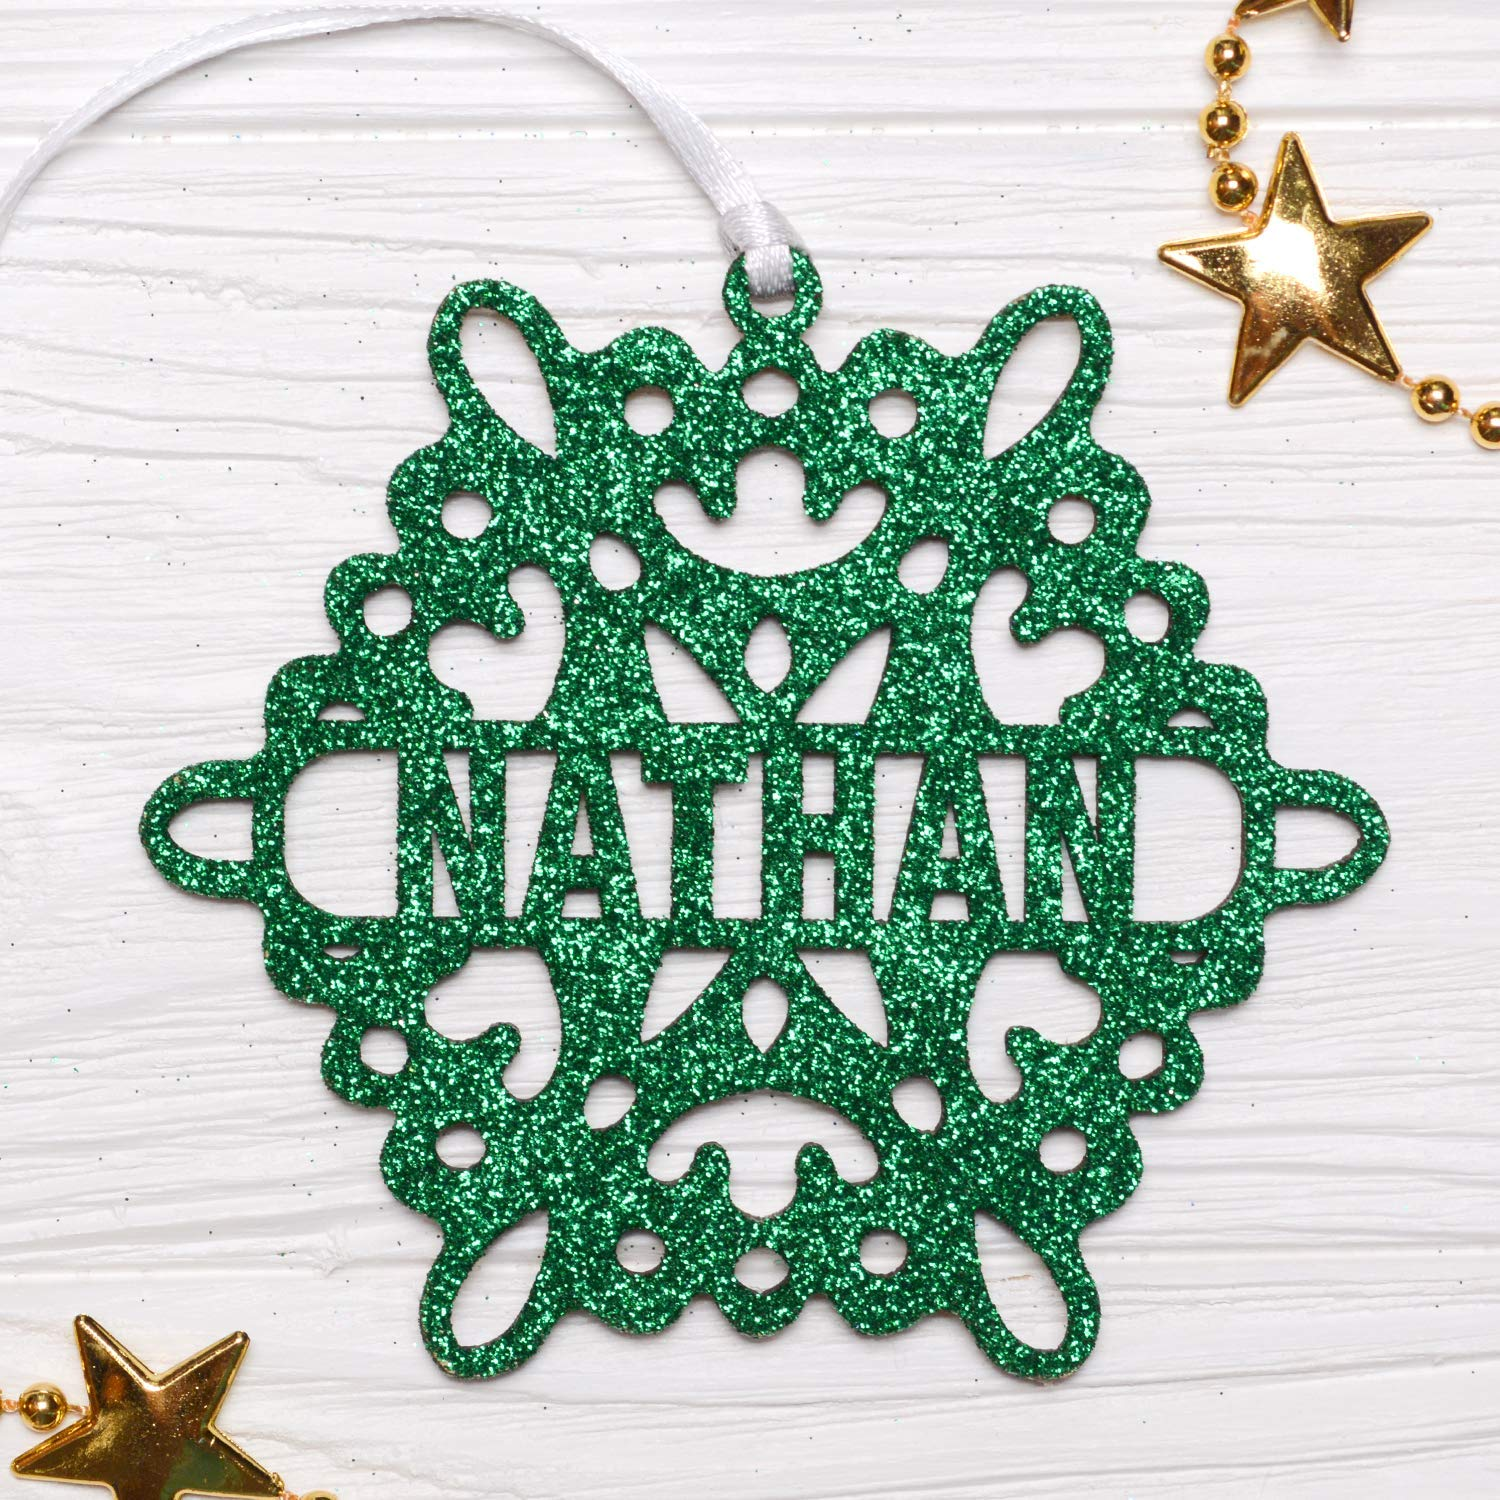 Personalized Christmas Snowflake/Green Glitter Snowflake, Wooden Snowflake Ornament, Christmas Decorations, Holiday Decor, Xmas Gifts